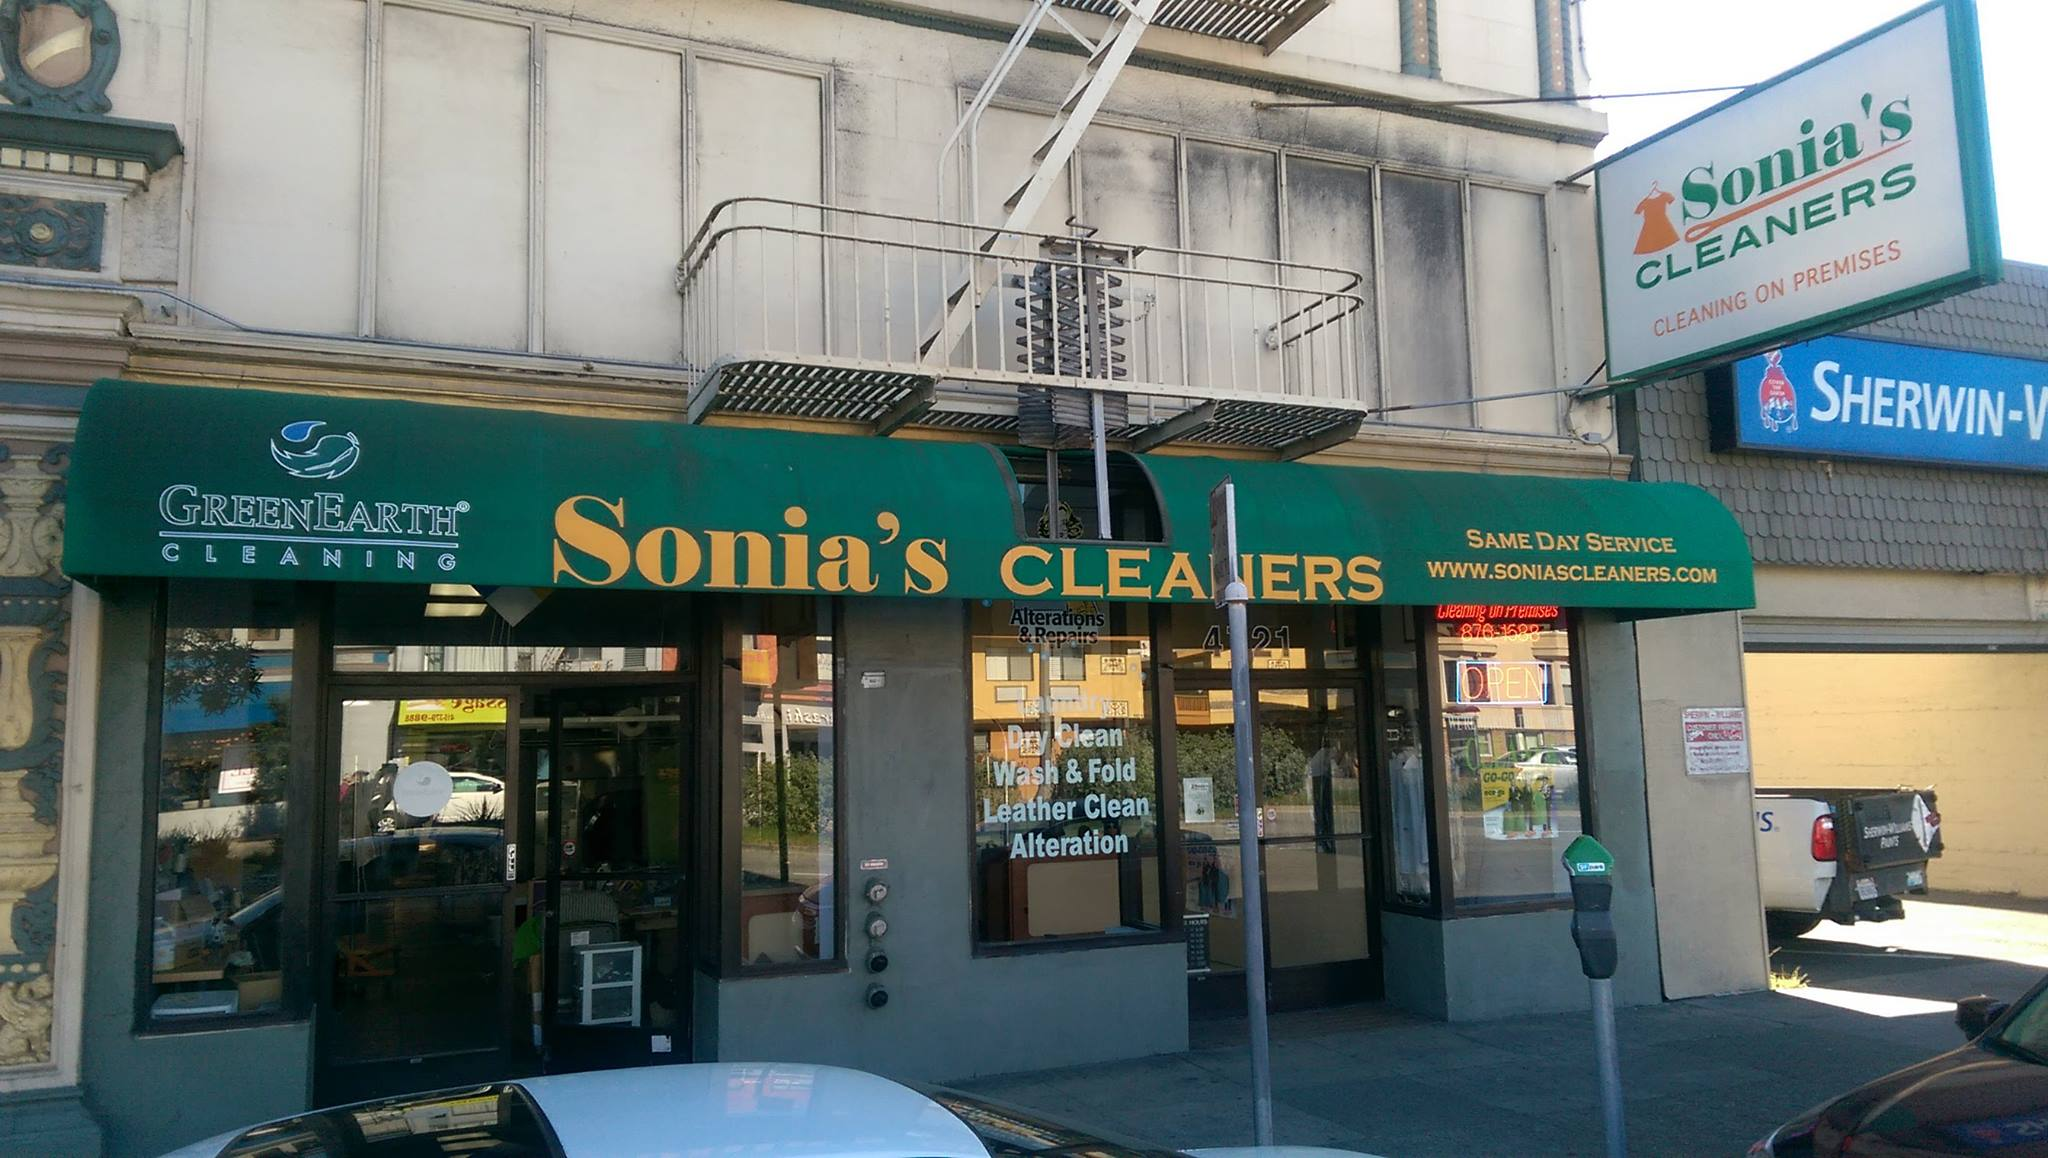 Sonia S Cleaners Makes The Top Of The List Greenearth Cleaning